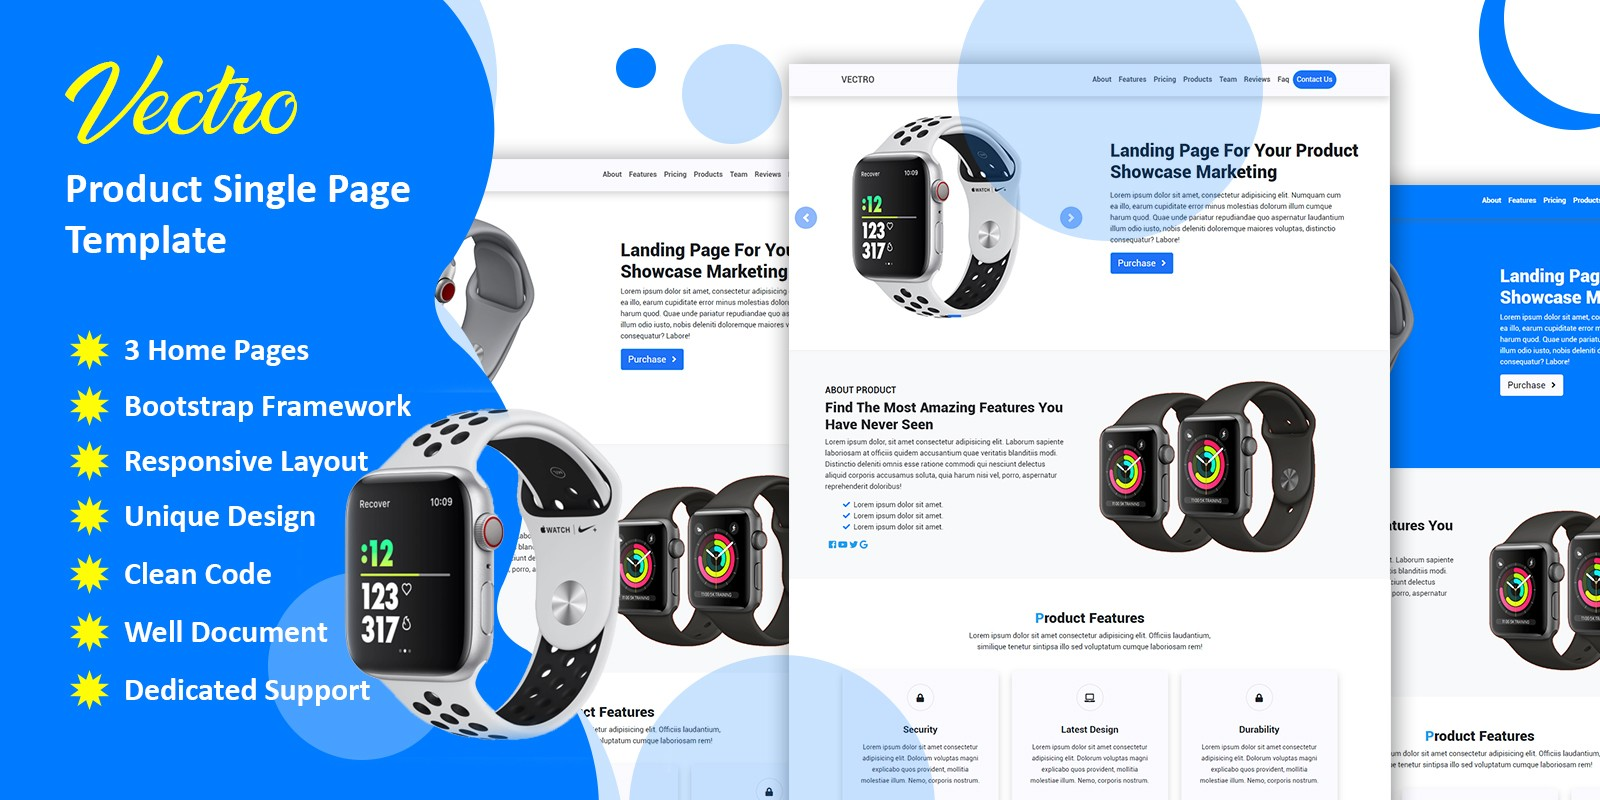 Vectro Product HTML Landing Page